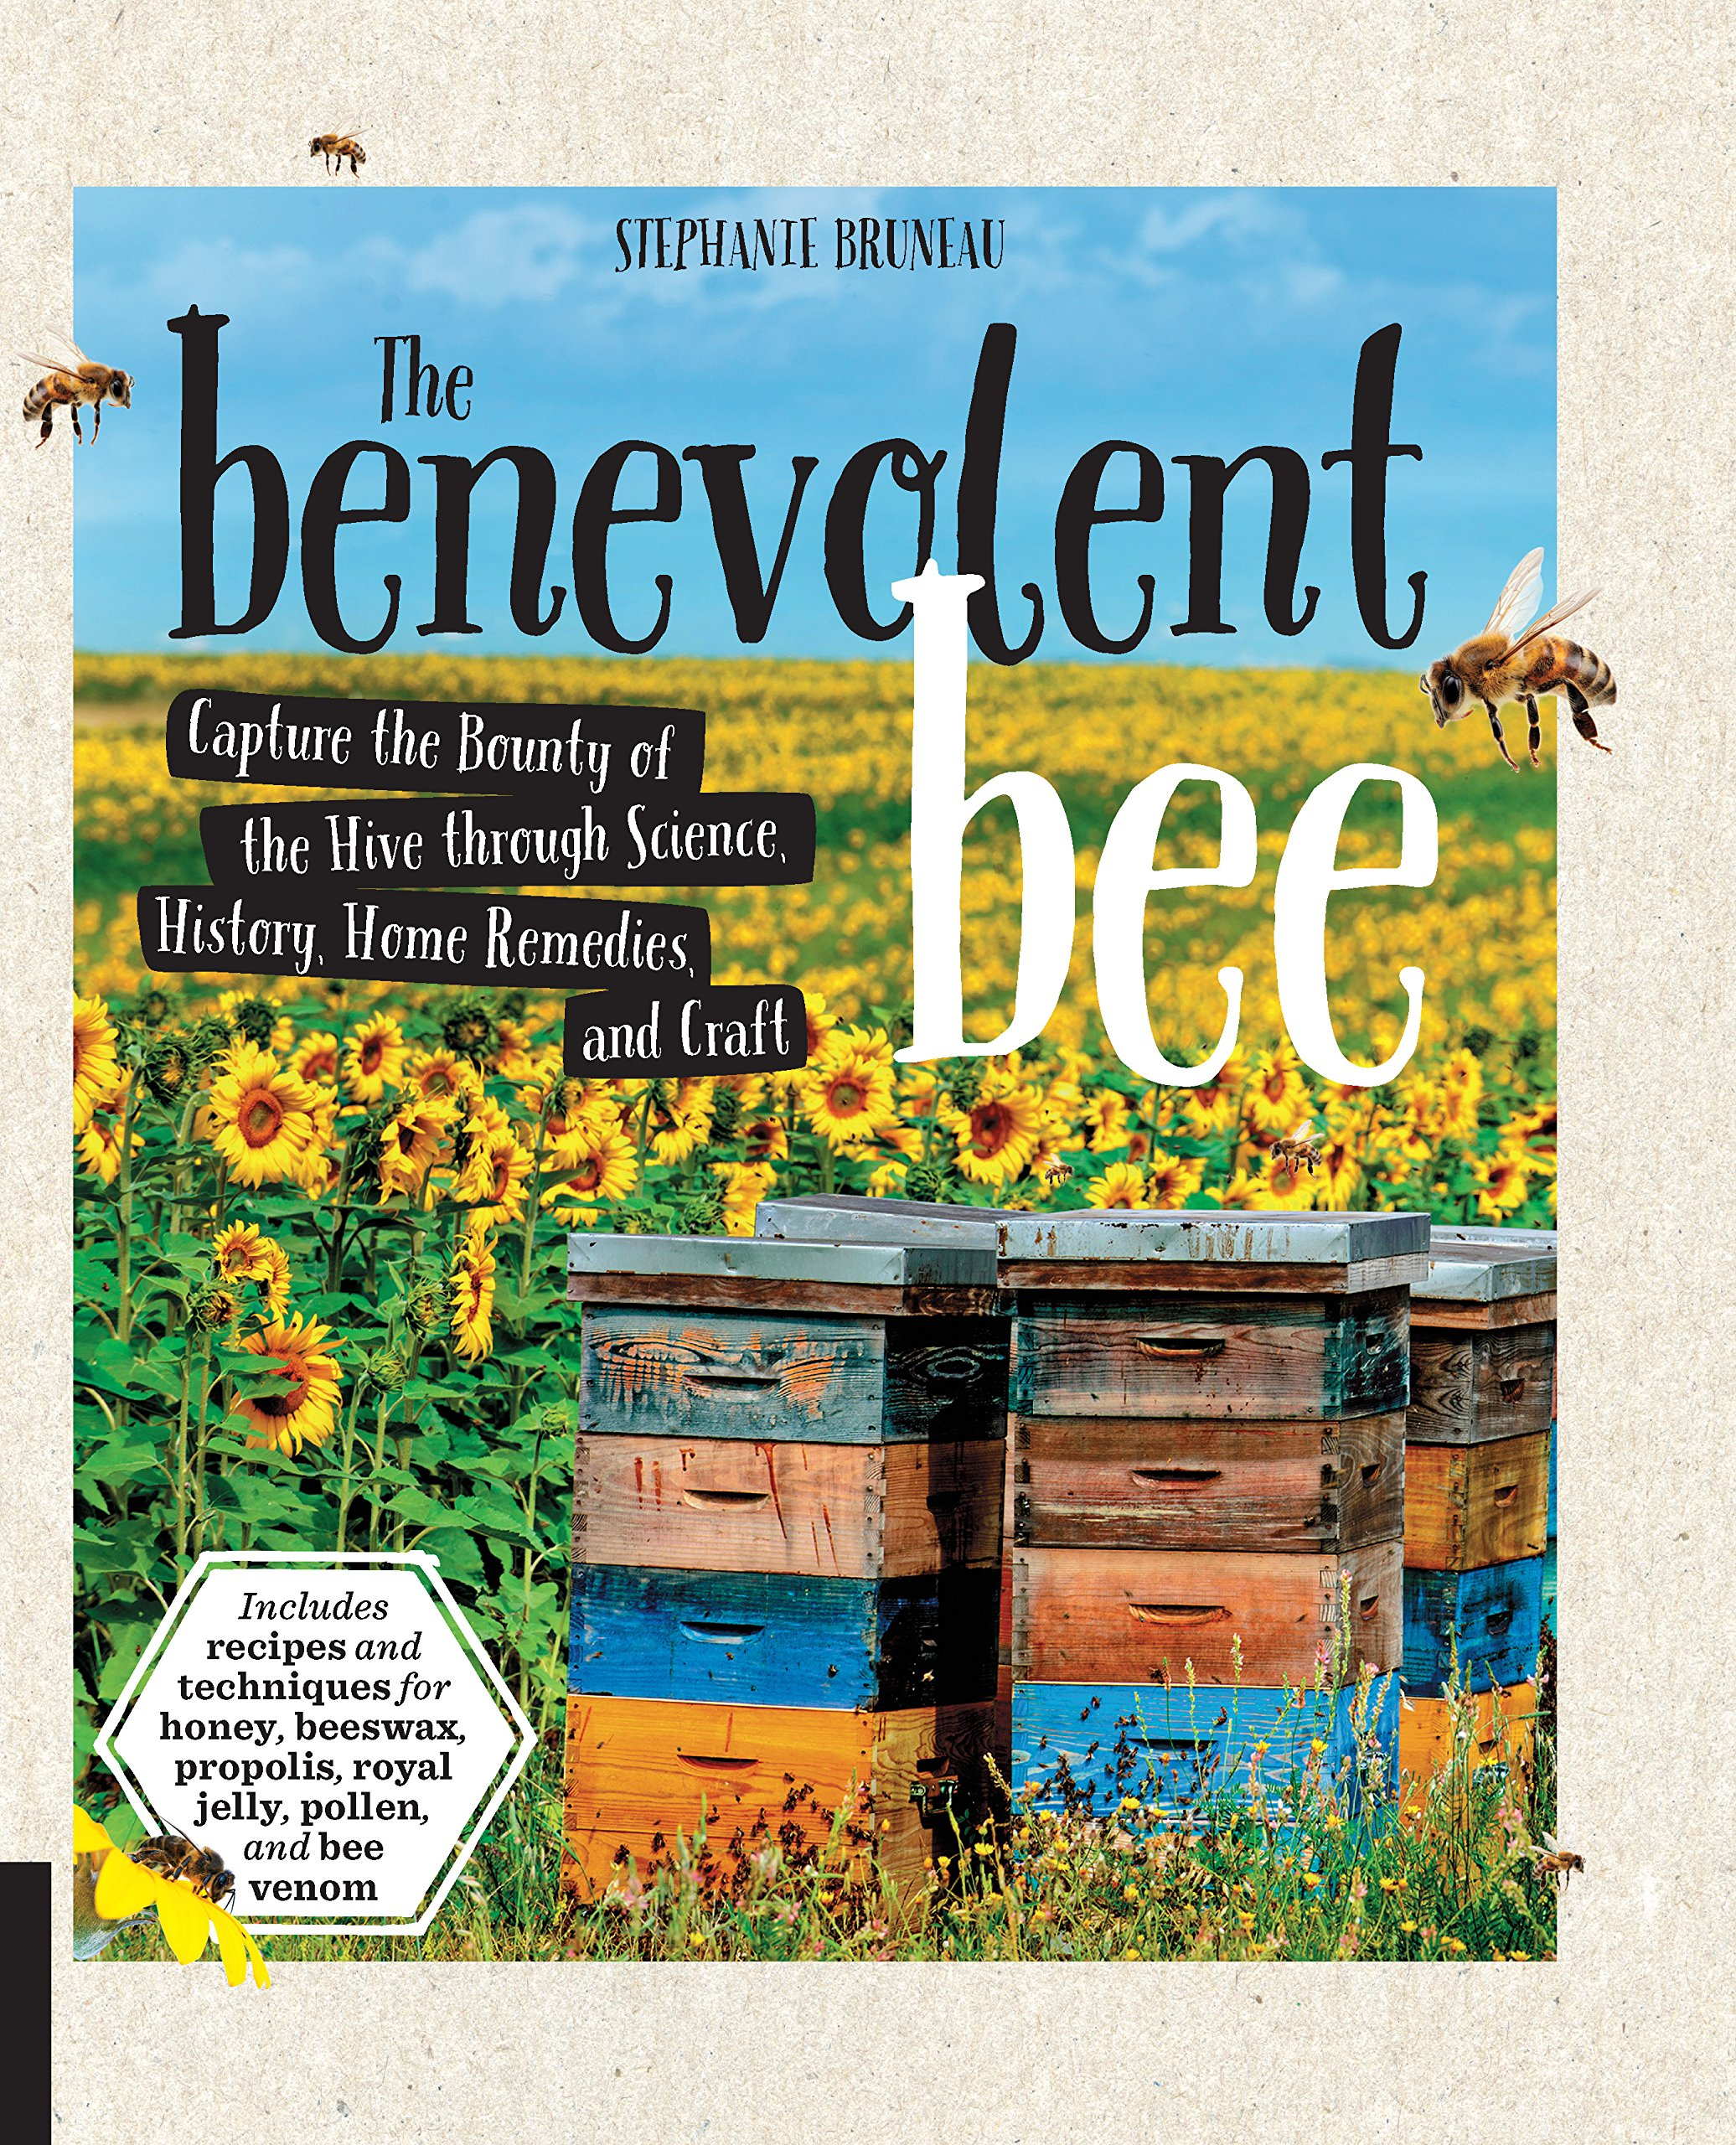 The Benevolent Bee Capture The Bounty Of The Hive Through